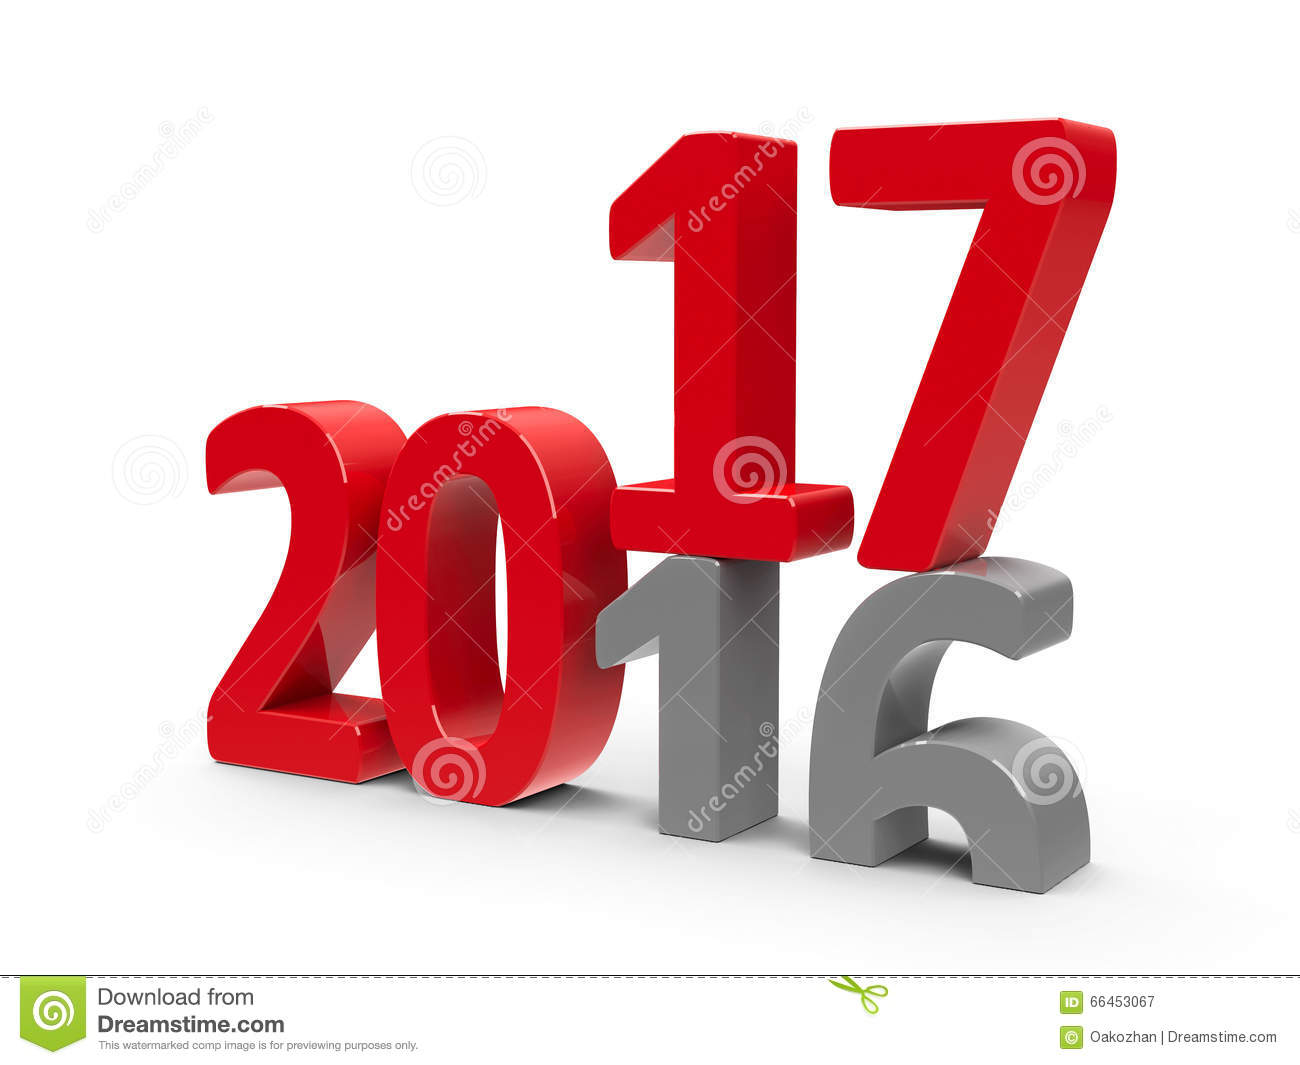 Calendar 2016 2017 Stock Photos, Images, & Pictures - 2,097 Images